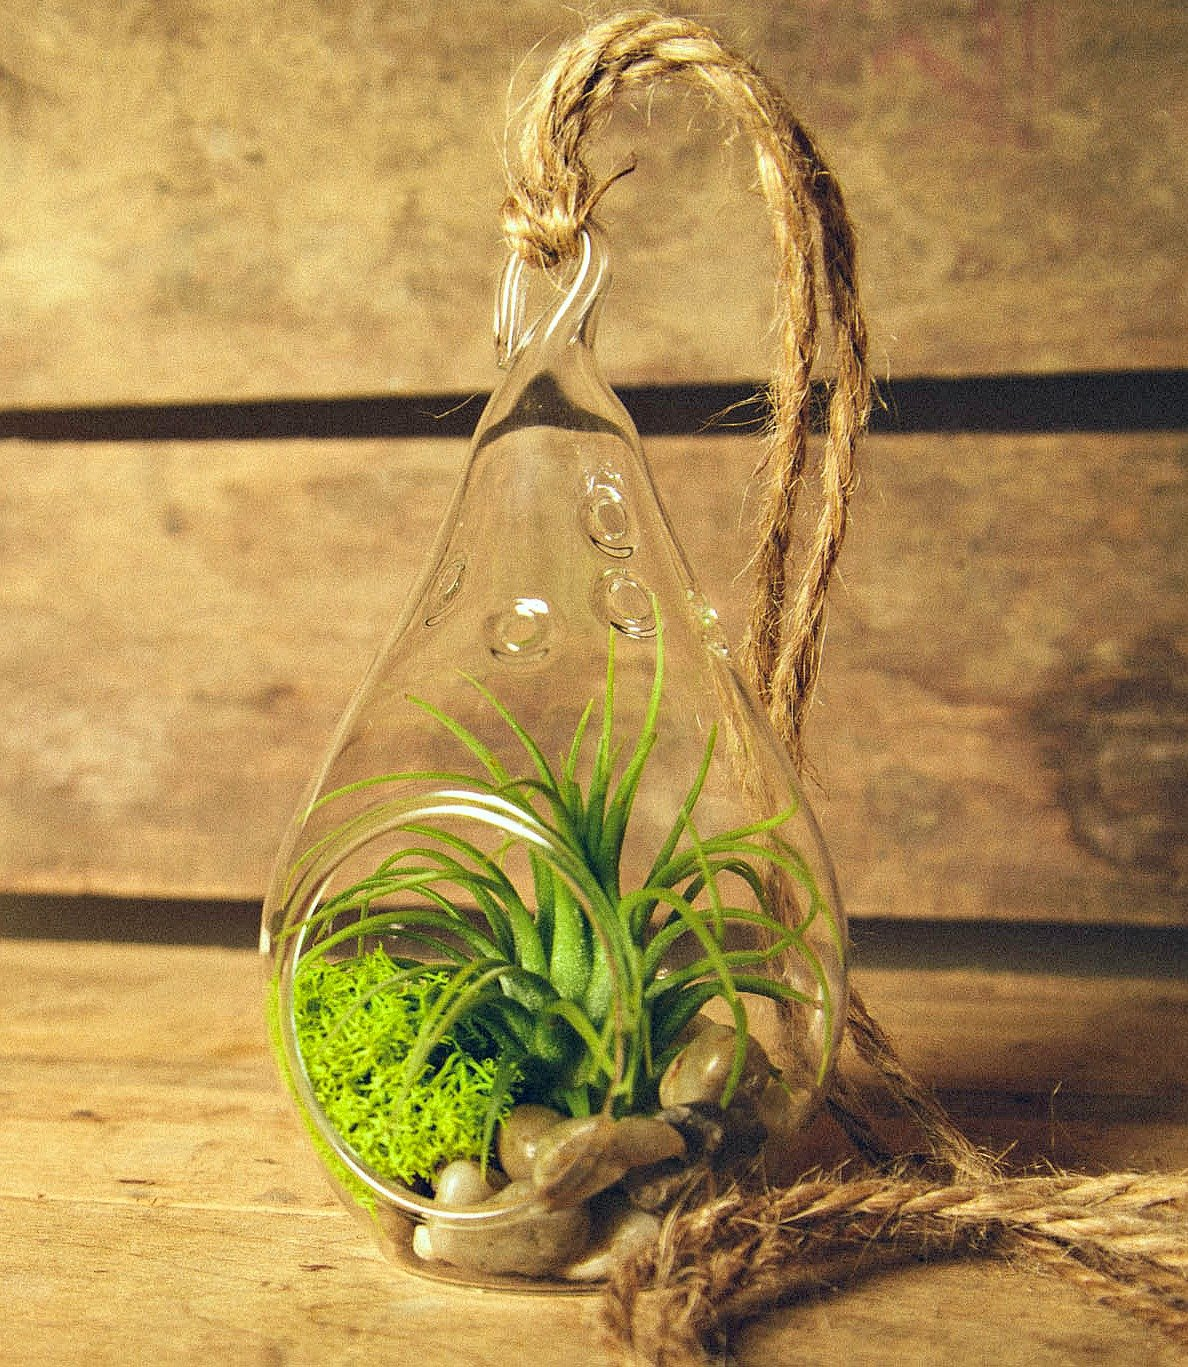 Air Plant Tillandsia Bromeliads Kit Teardrop Terrarium with Pebbles and Moss Great Little Houseplant